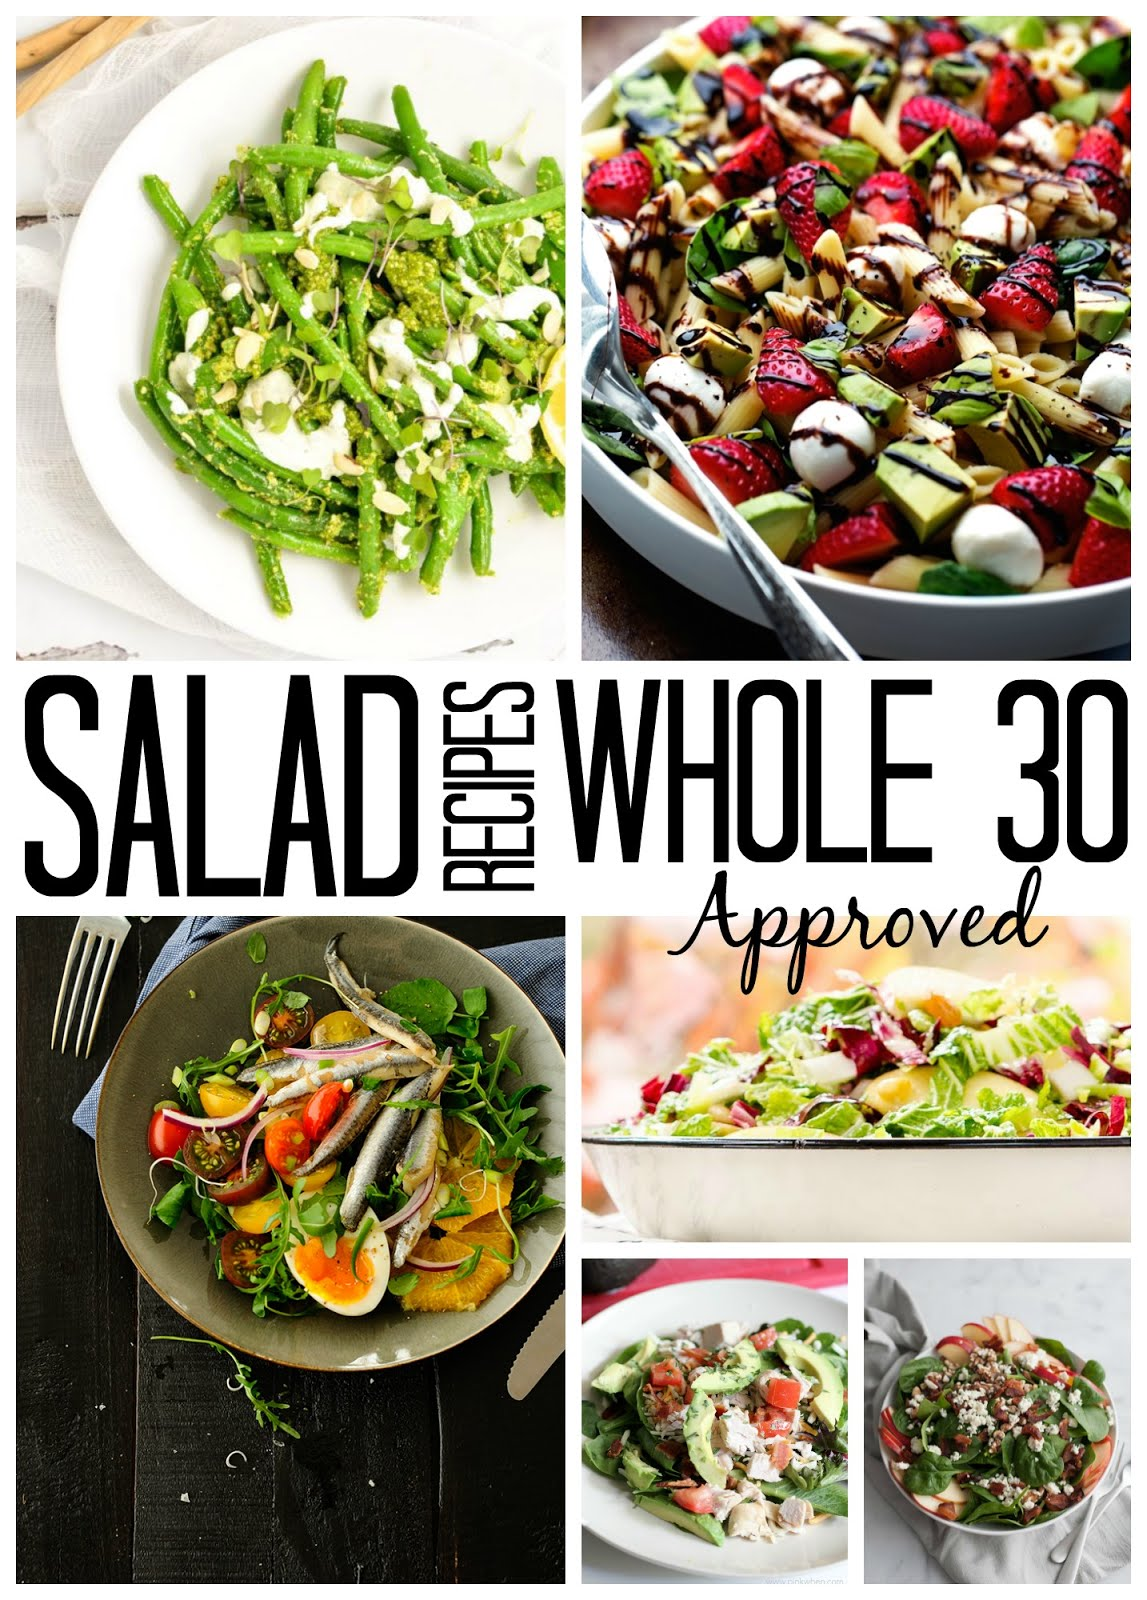 Whole 30 Approved Salad Recipes